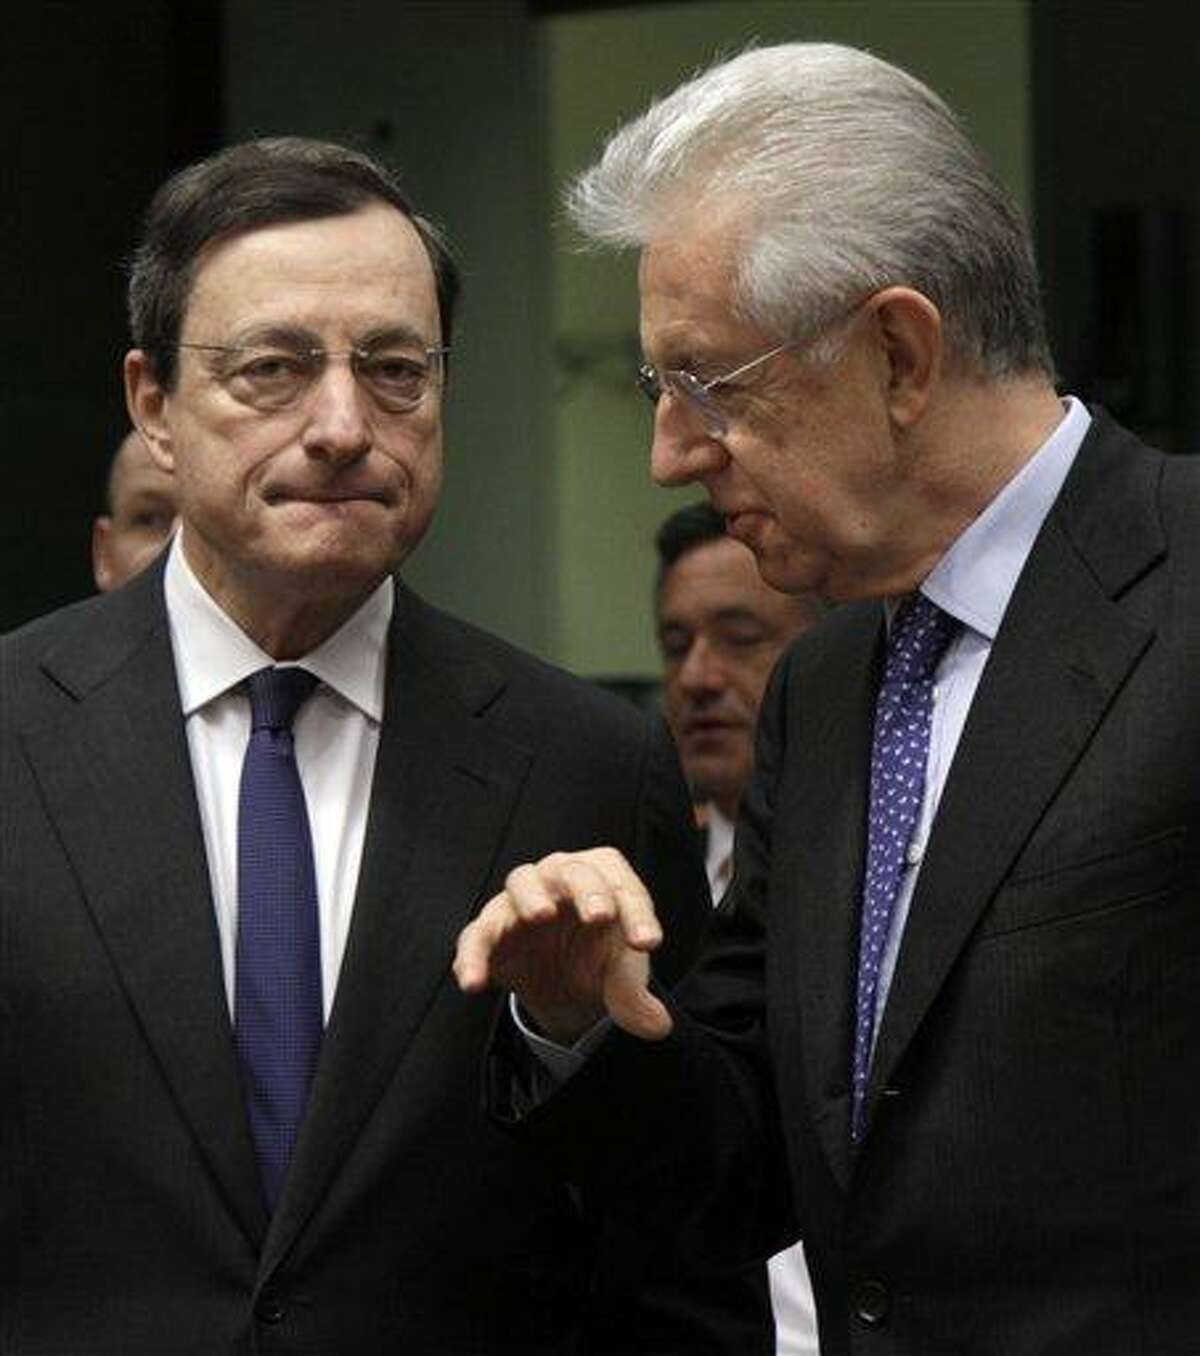 Italian Prime Minister Mario Monti, right, speaks with European Central Bank President Mario Draghi during a meeting of eurozone finance ministers at the EU Council building in Brussels earlier this month. Associated Press